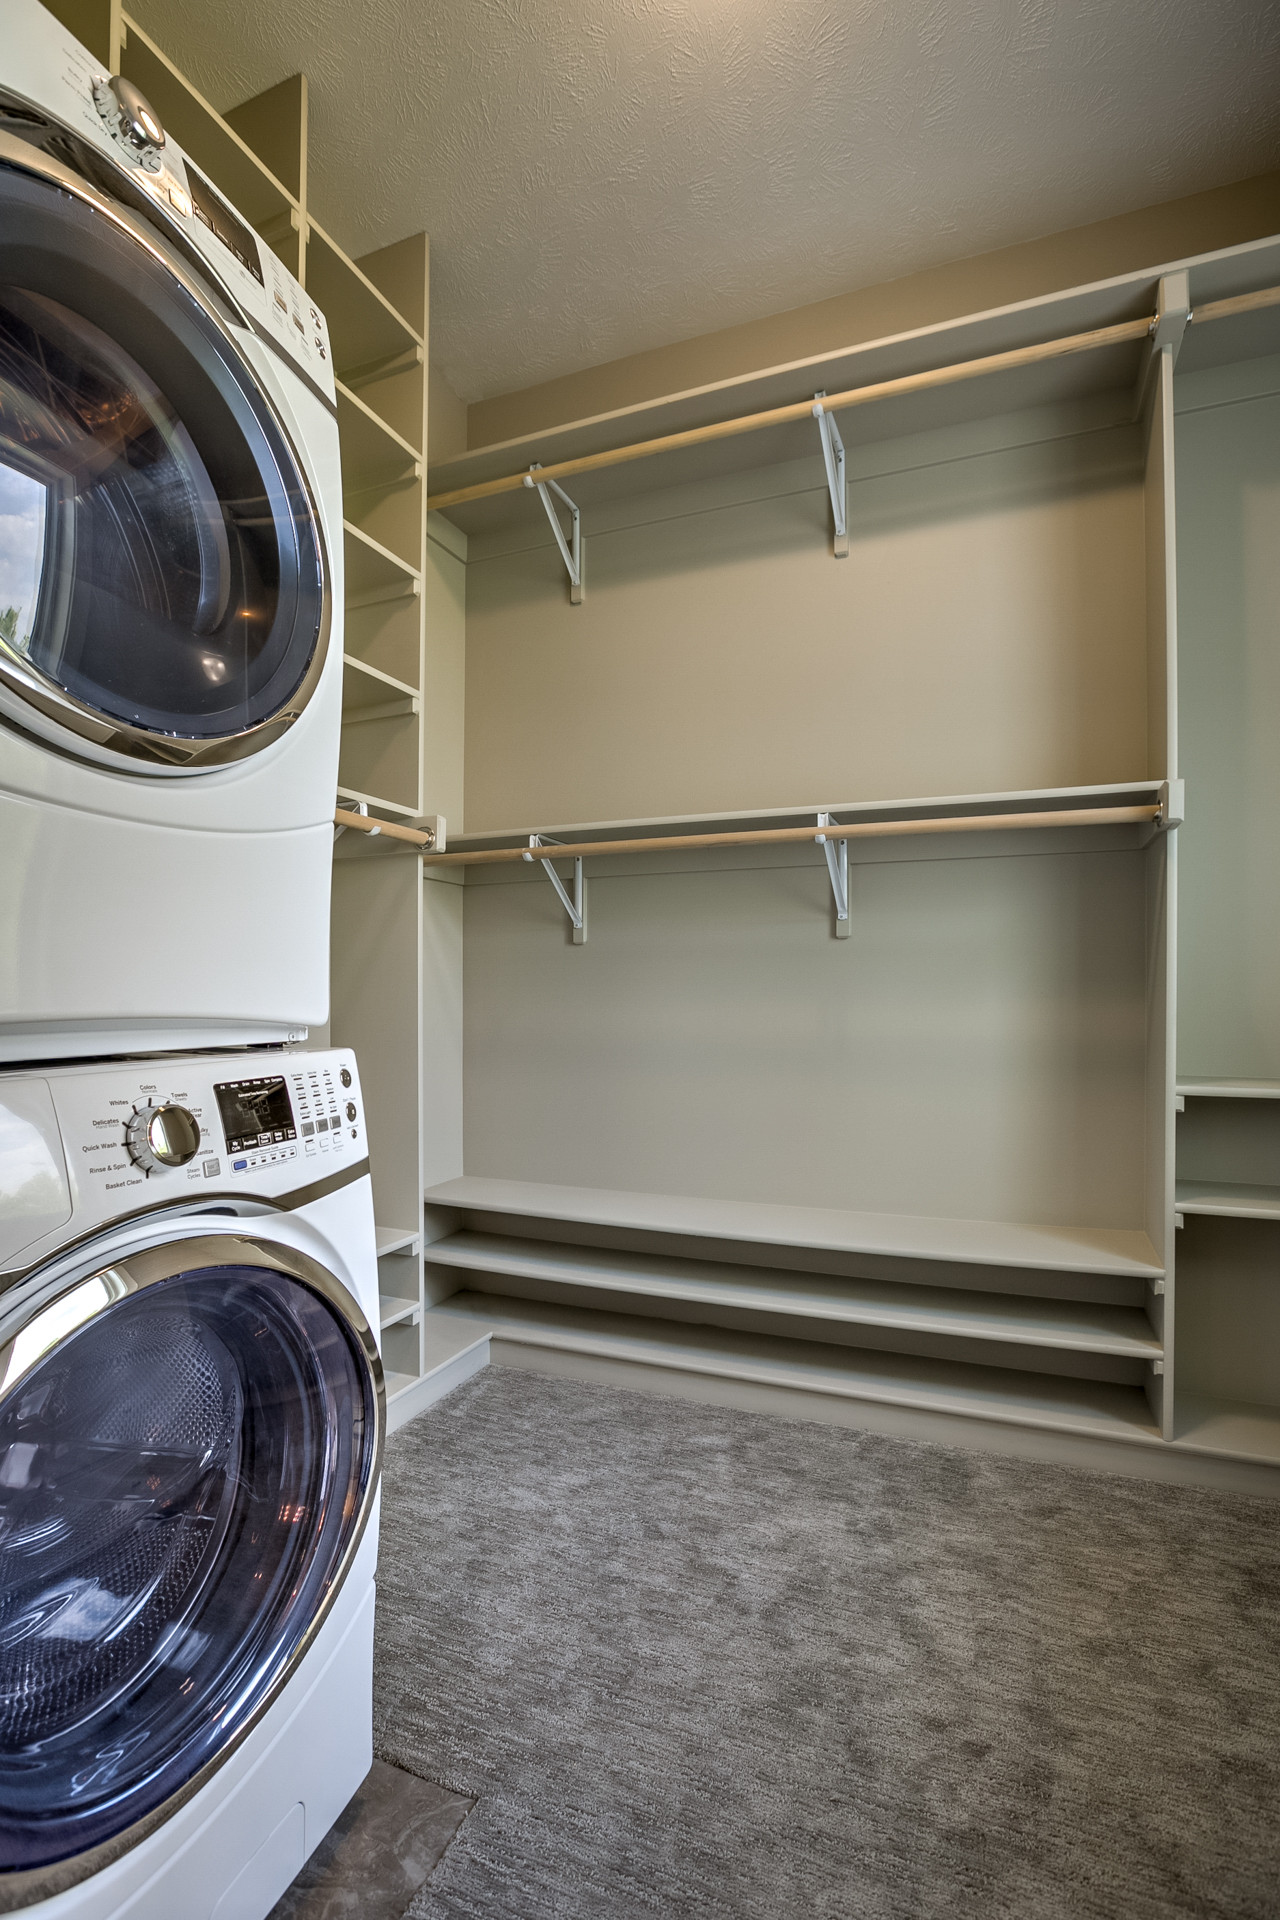 75 Beautiful Carpeted Laundry Room Pictures Ideas December 2020 Houzz